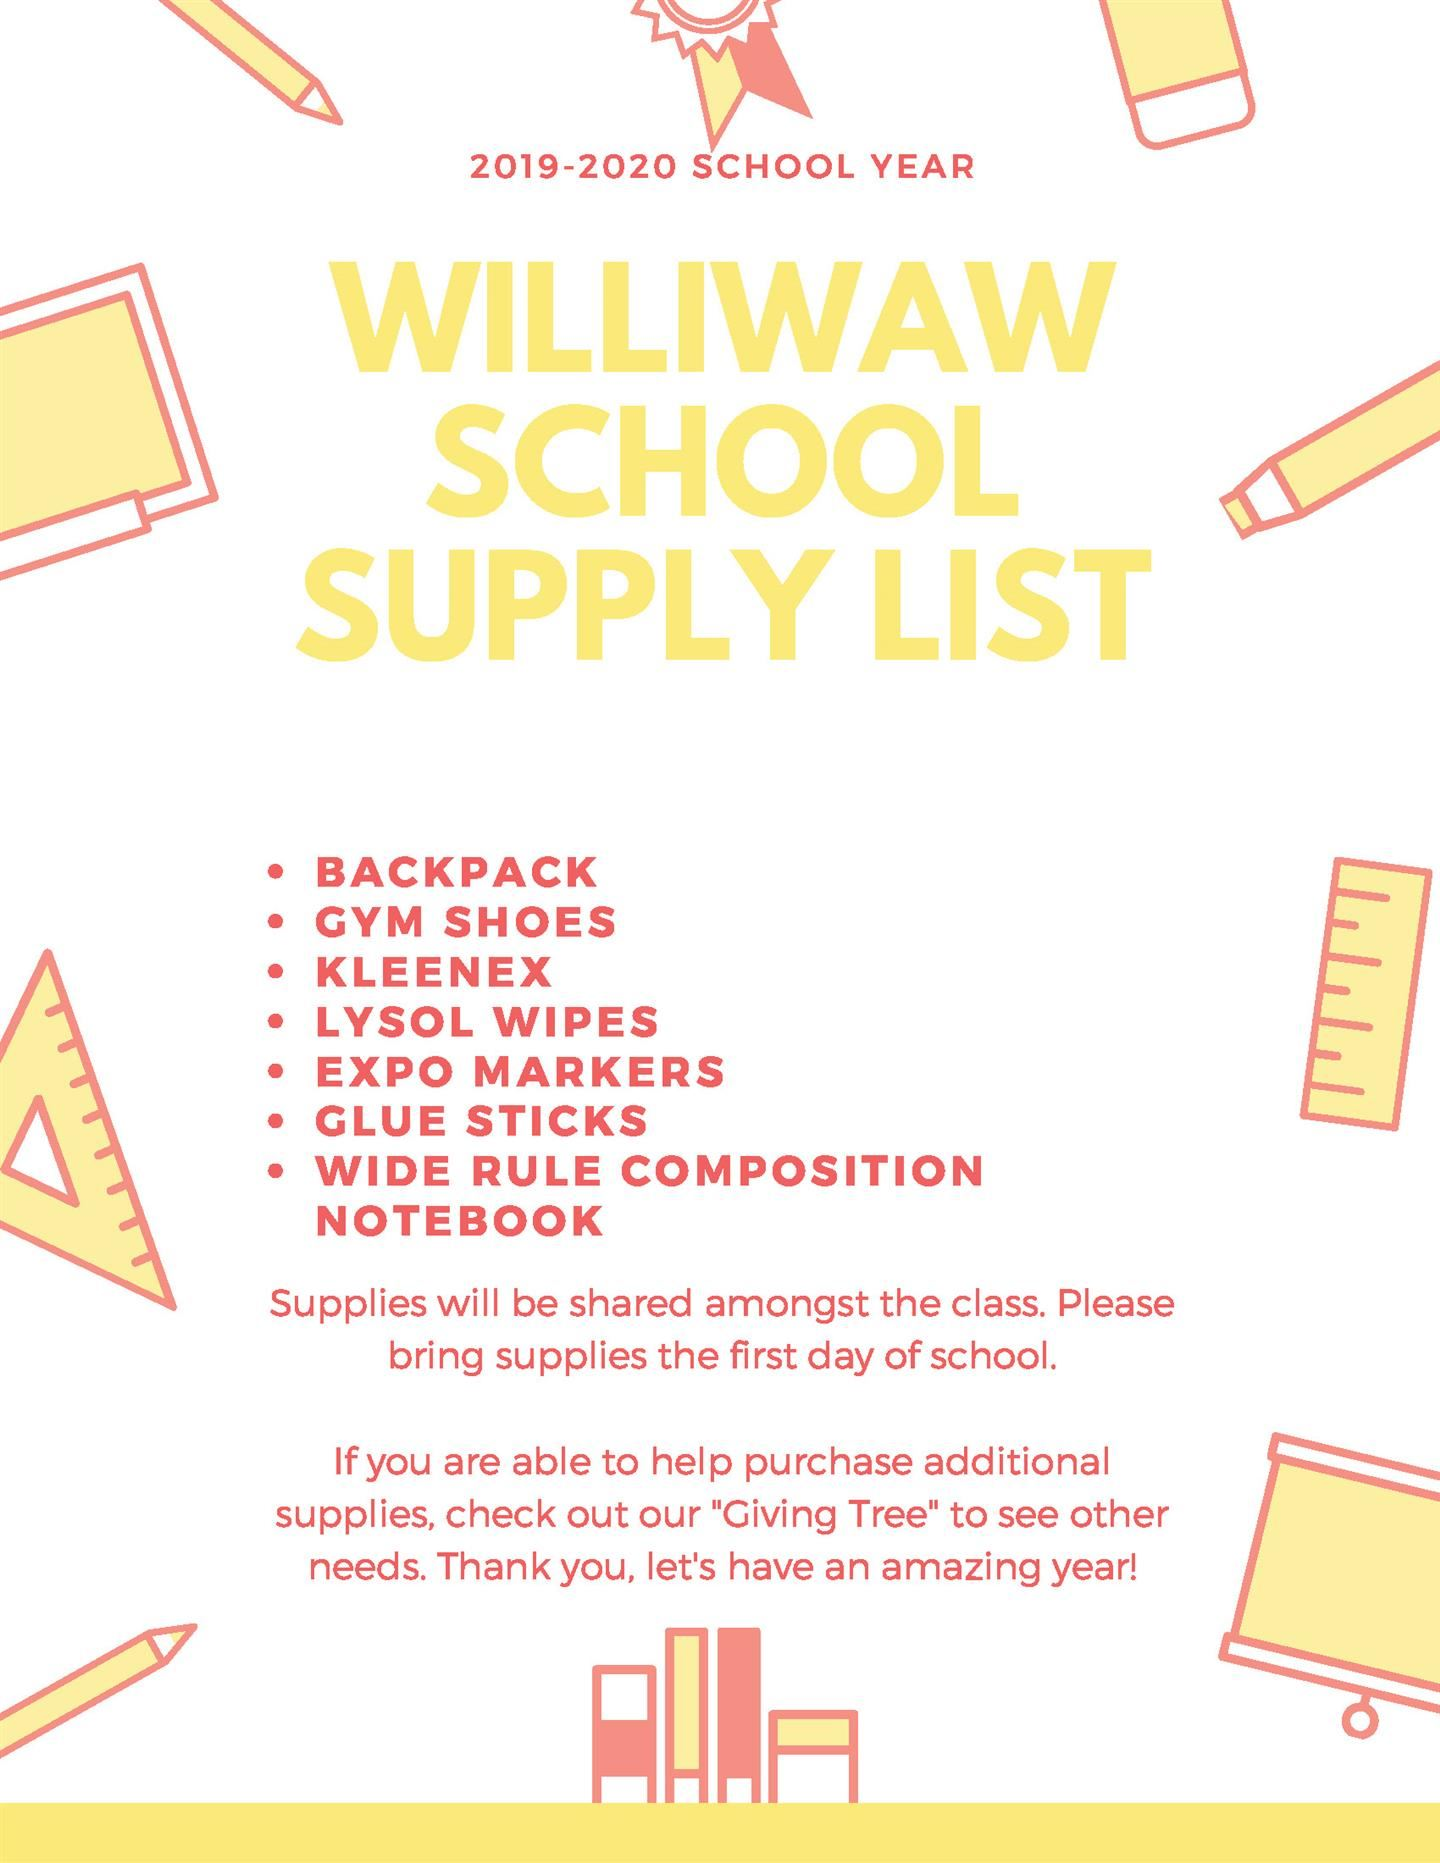 School Supply List Download as a PDF